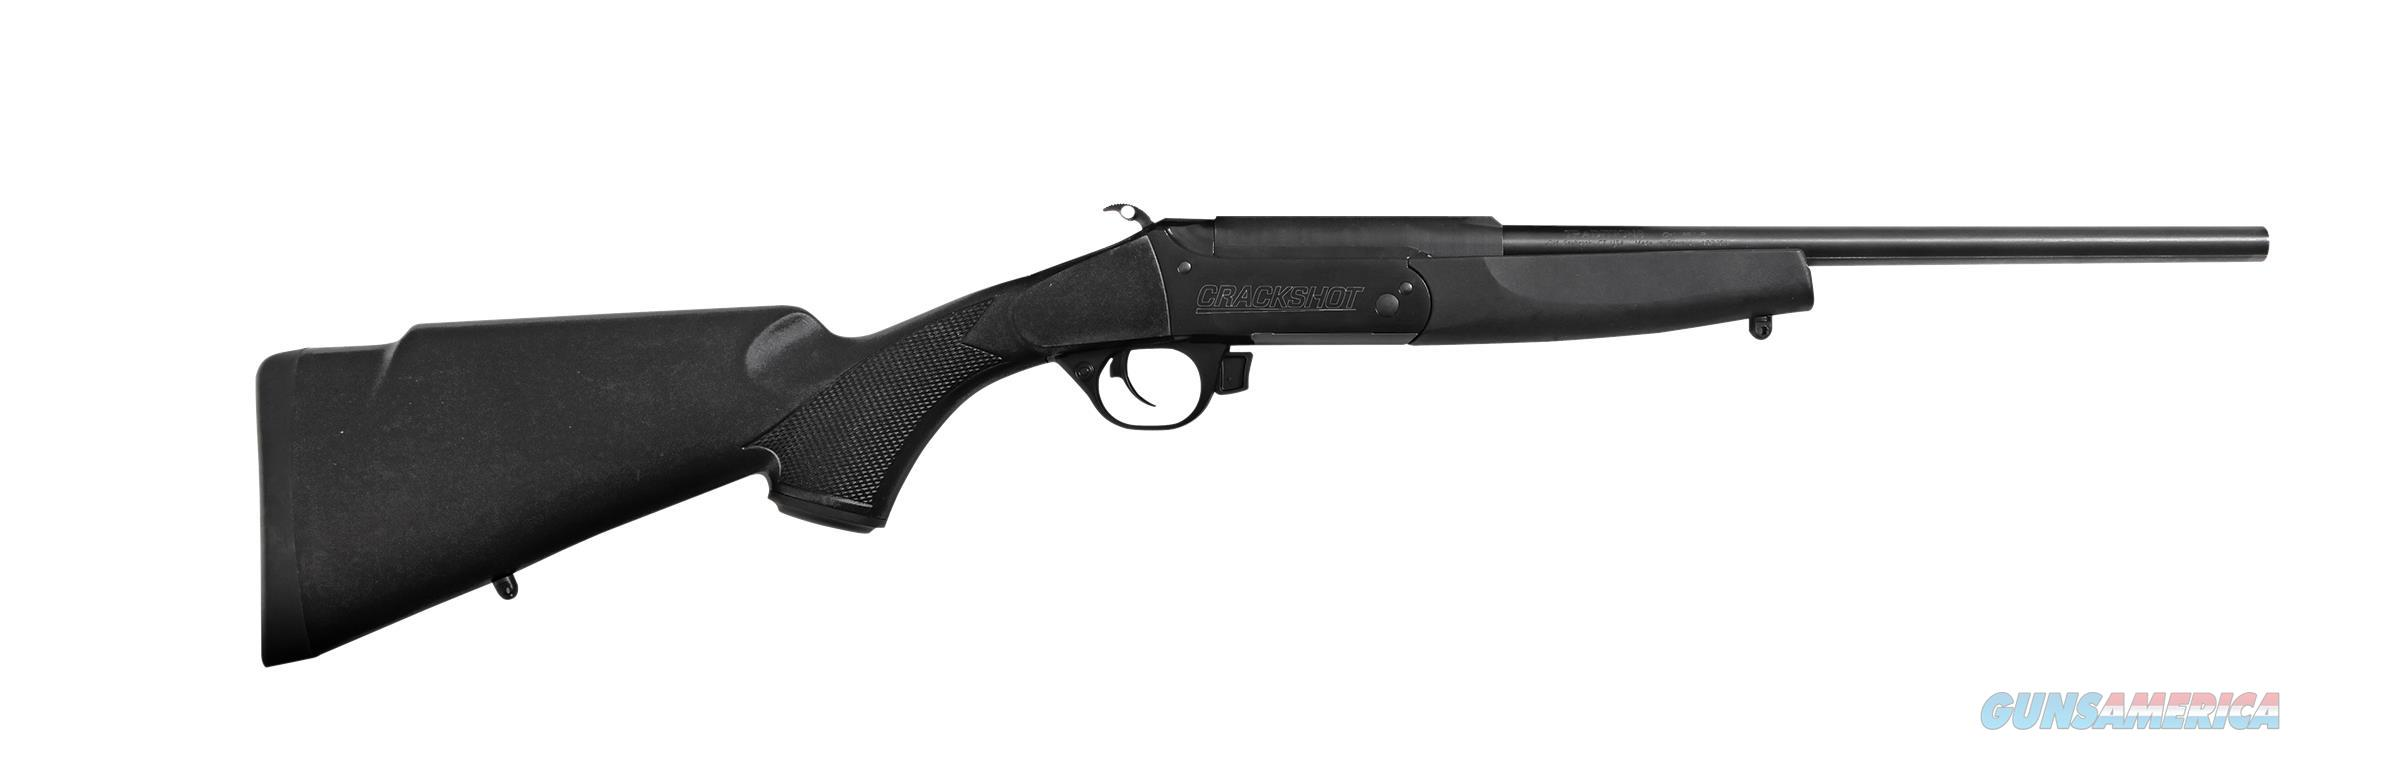 "TRADITIONS CRY220070 CRACKSHOT CMPT BREAK OPEN 22LR 16.5"" 1RD SYN BLACK CRY220070  Guns > Rifles > Traditions Rifles"